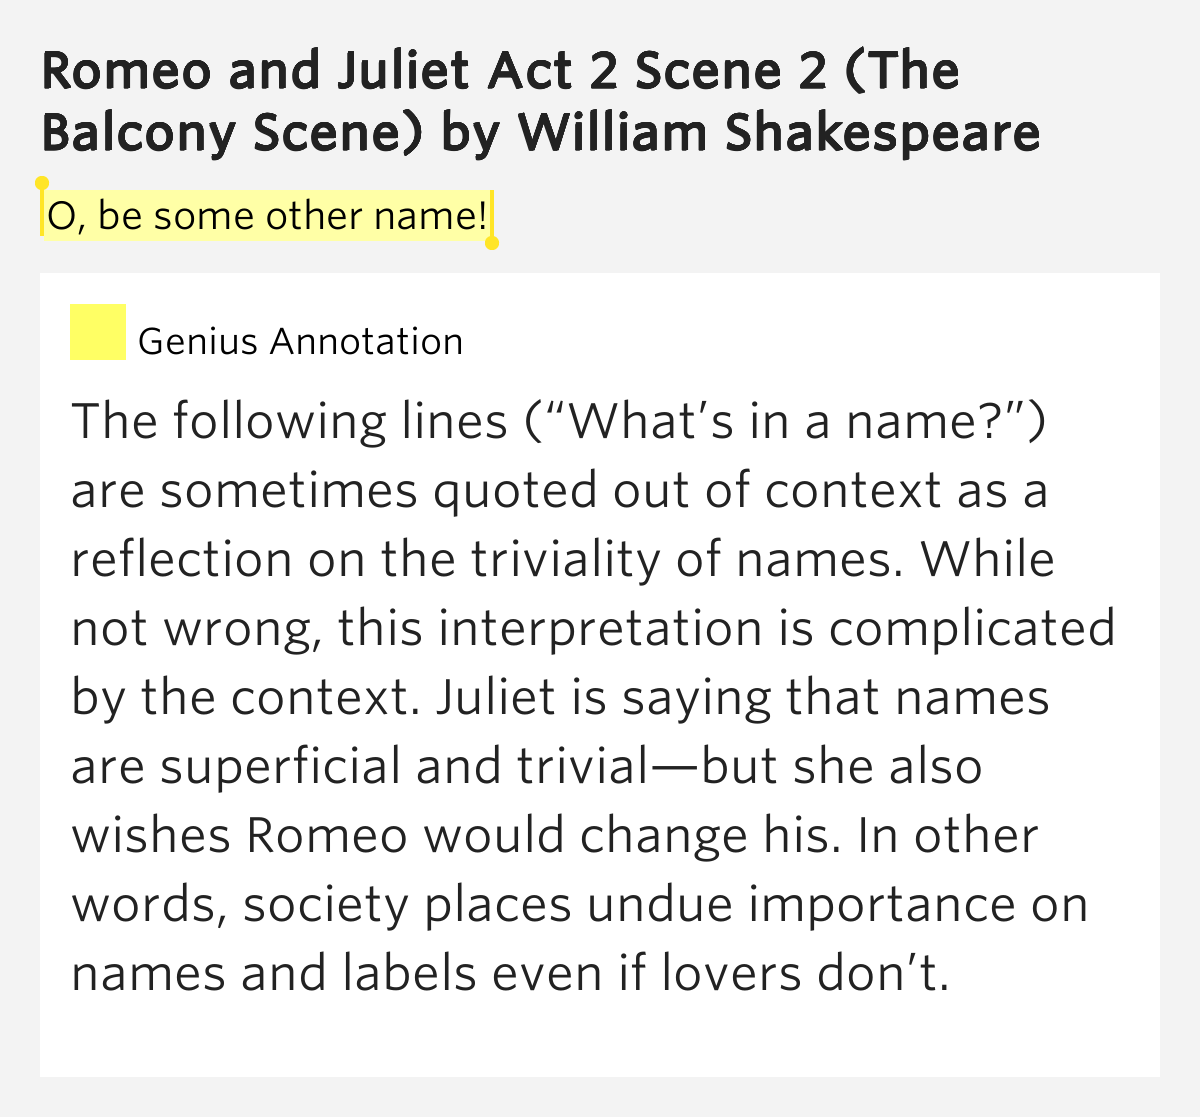 O be some other name romeo and juliet act 2 scene 2 for Other names for balcony